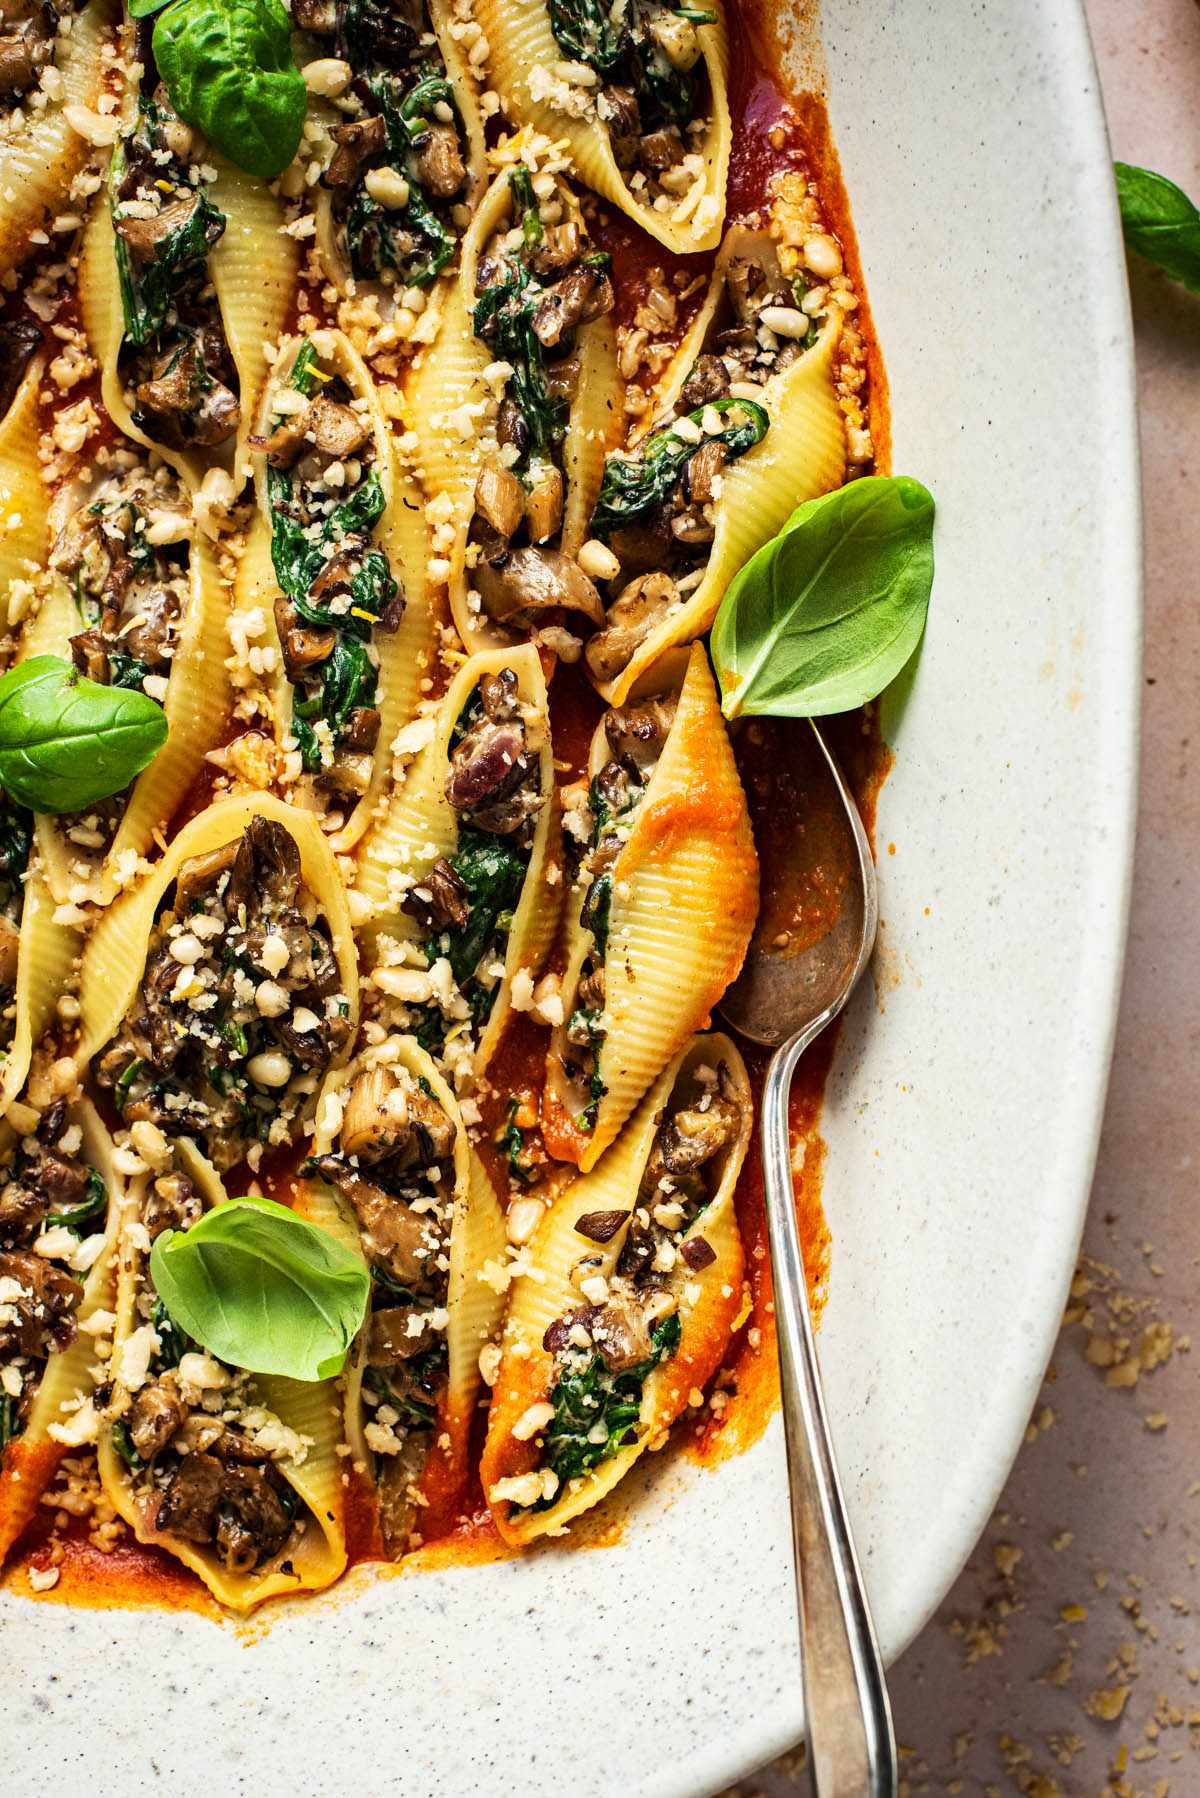 Close up of stuffed shells in tomato sauce with basil leaves.